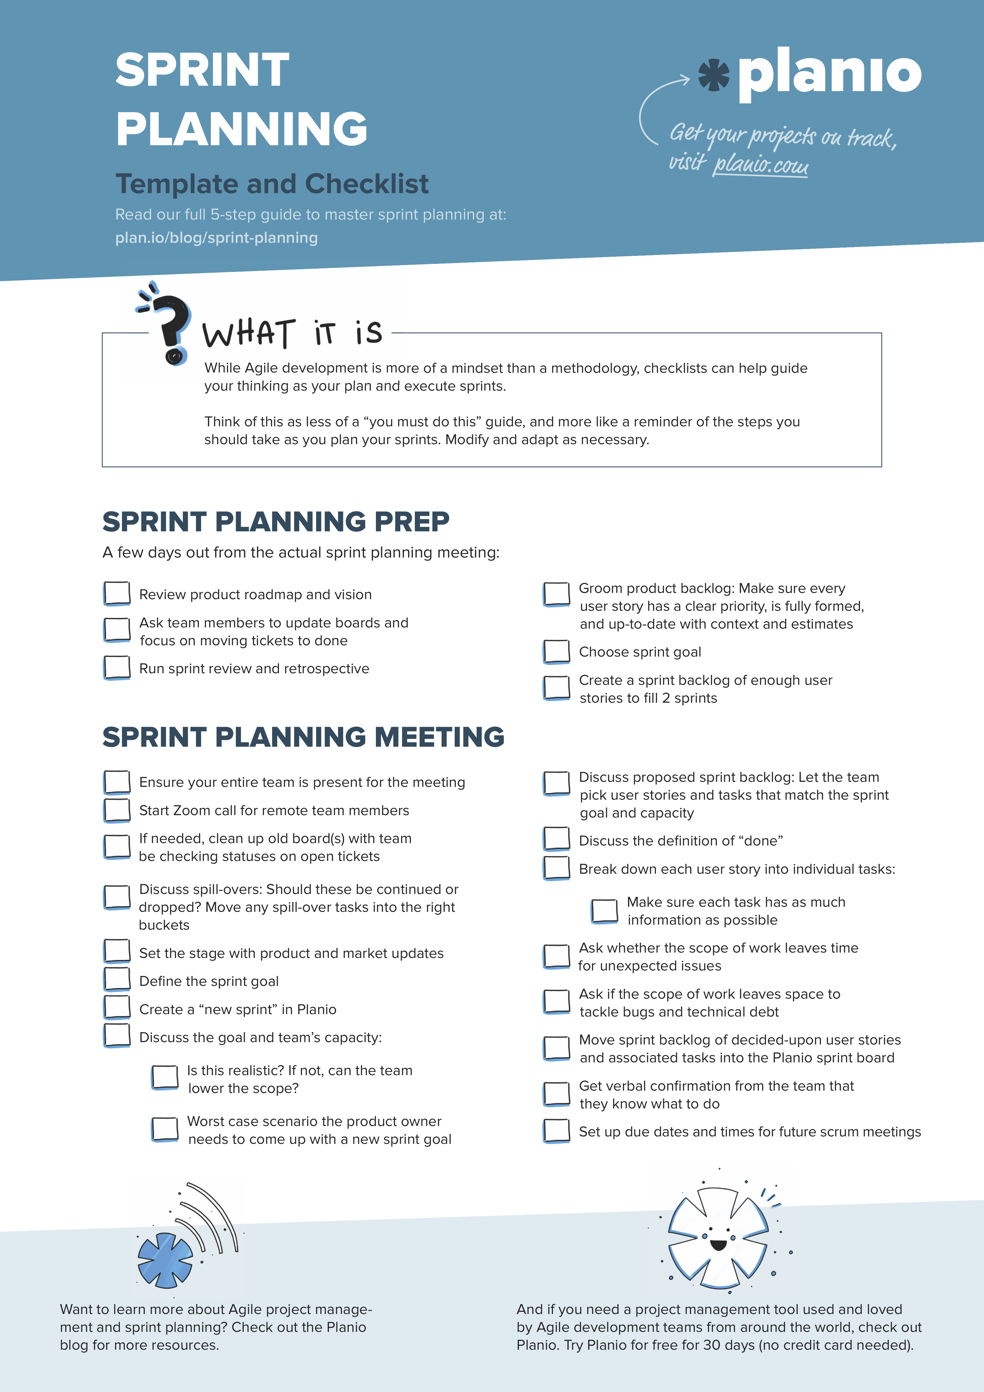 Sprint planning template